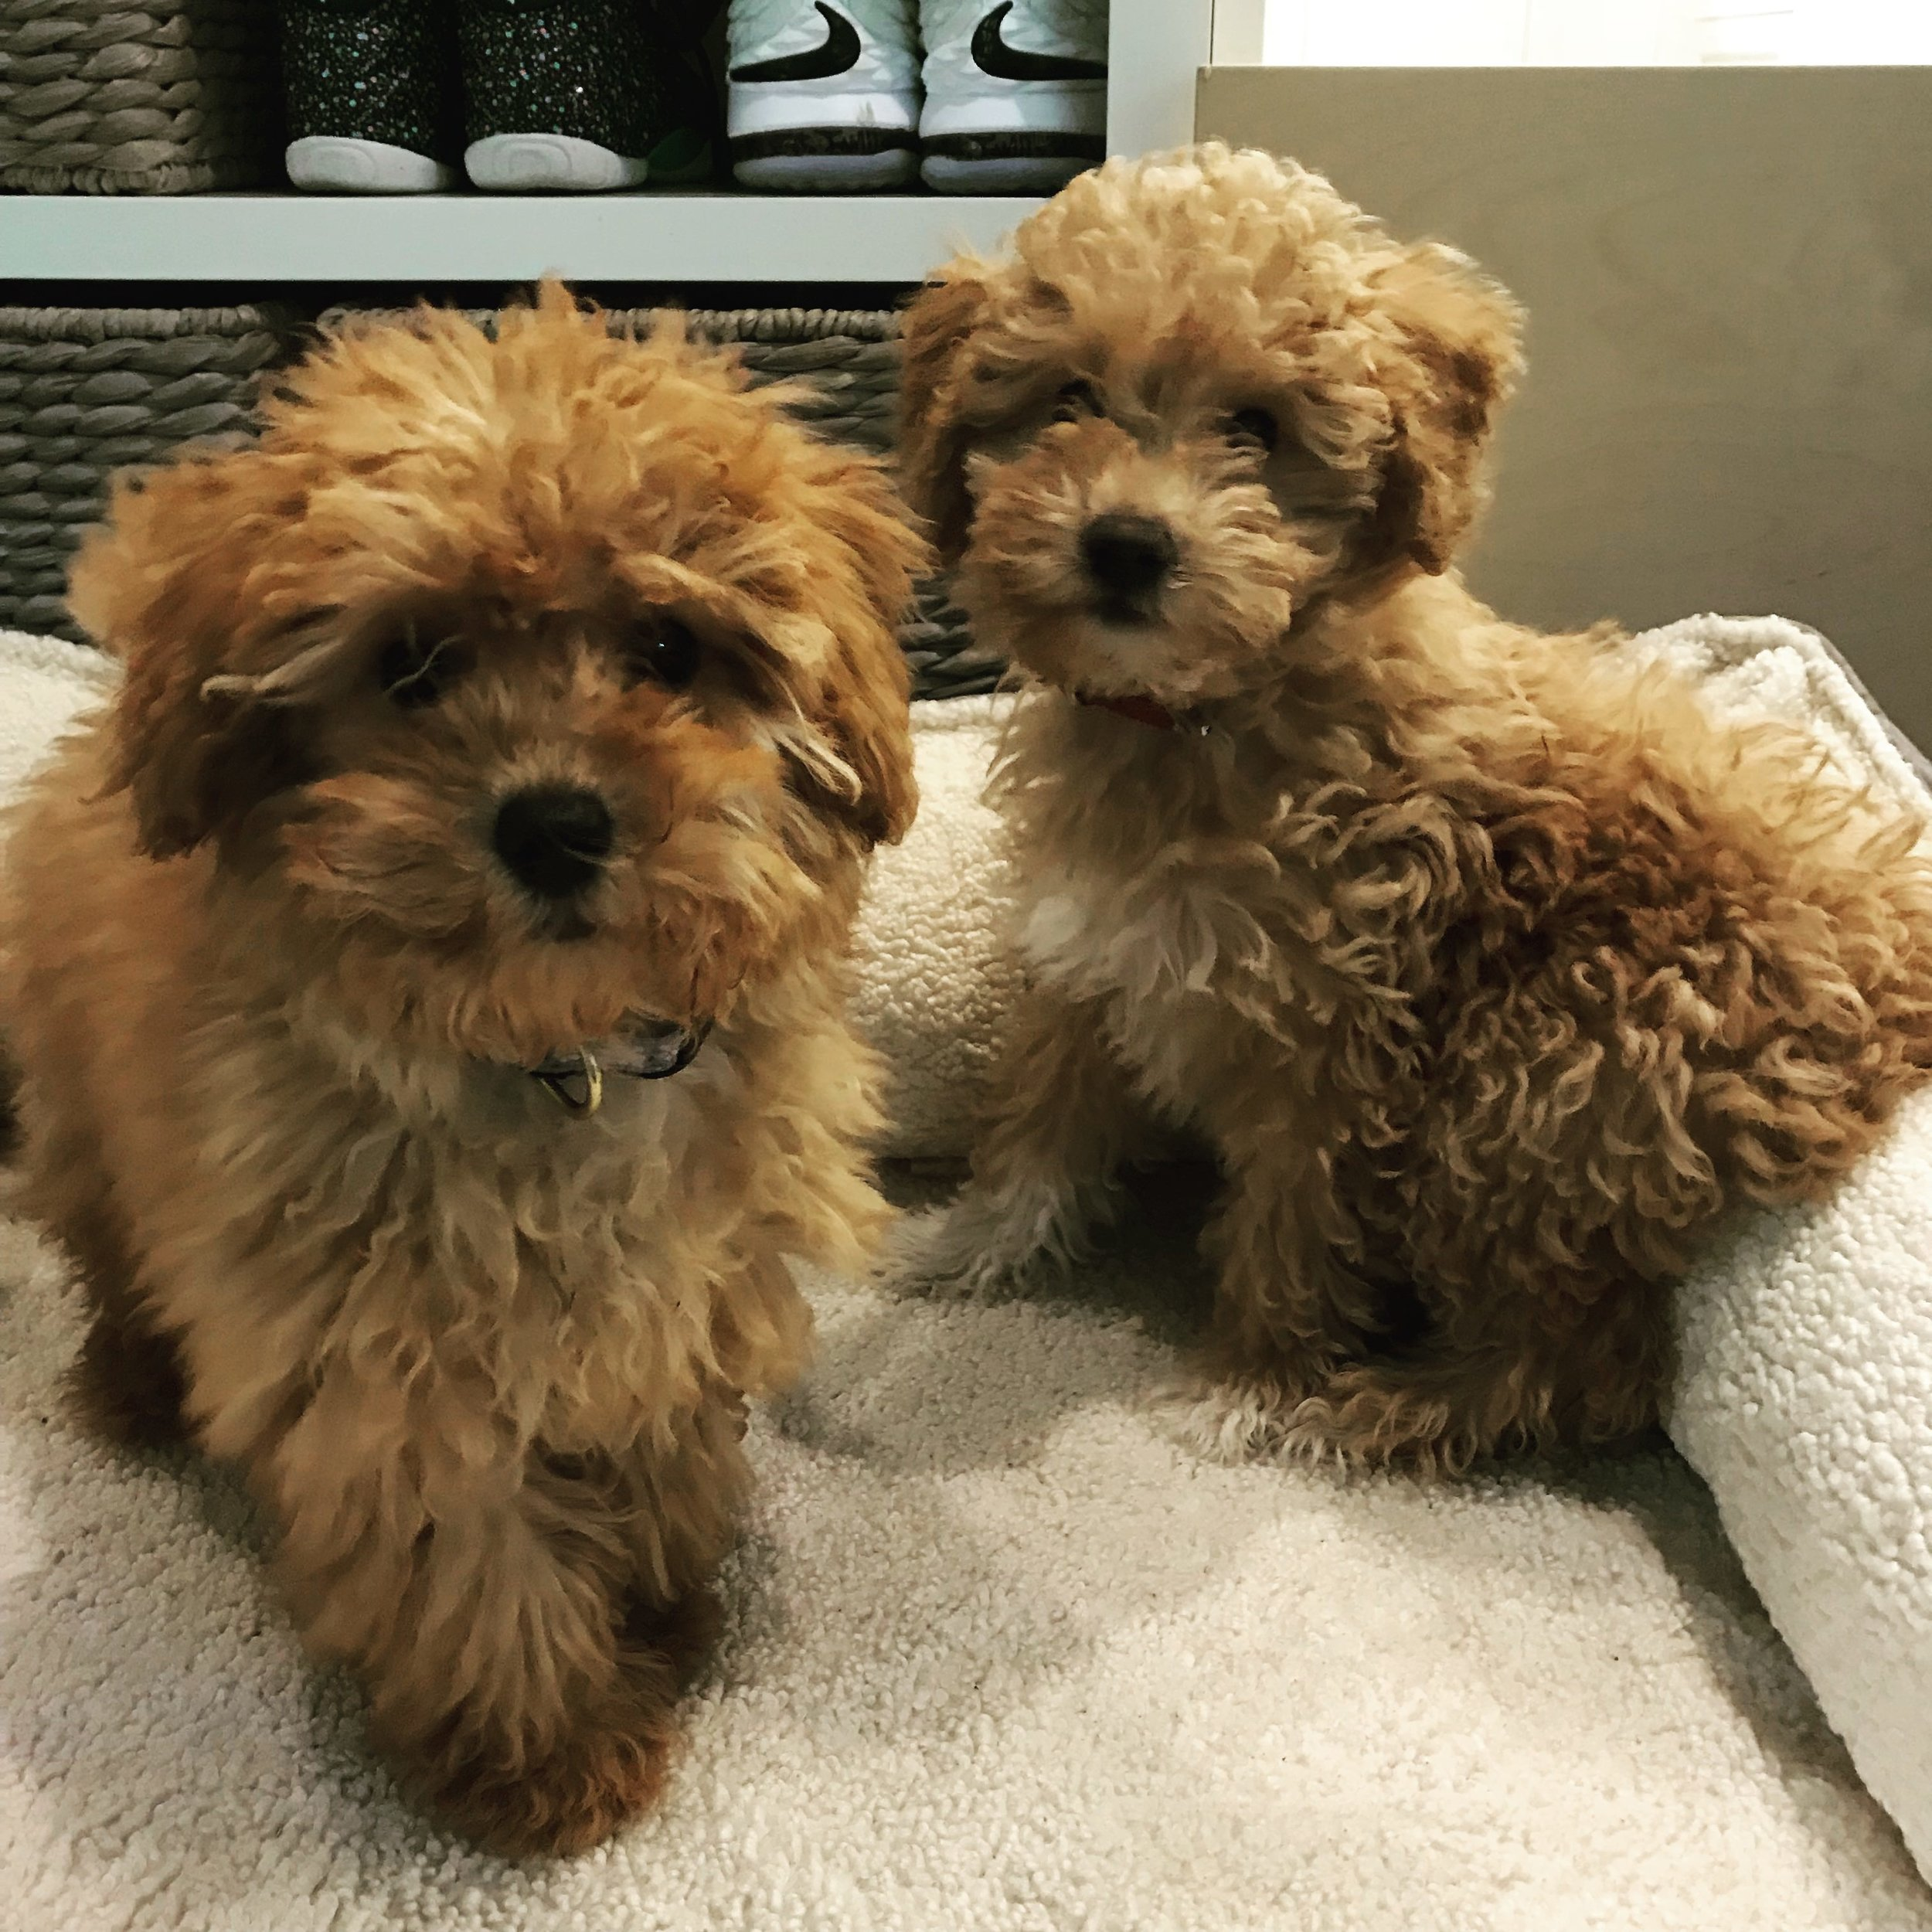 Puppy training should include a solid puppy socialization plan. There are lots of puppy classes offered in Los Angeles.